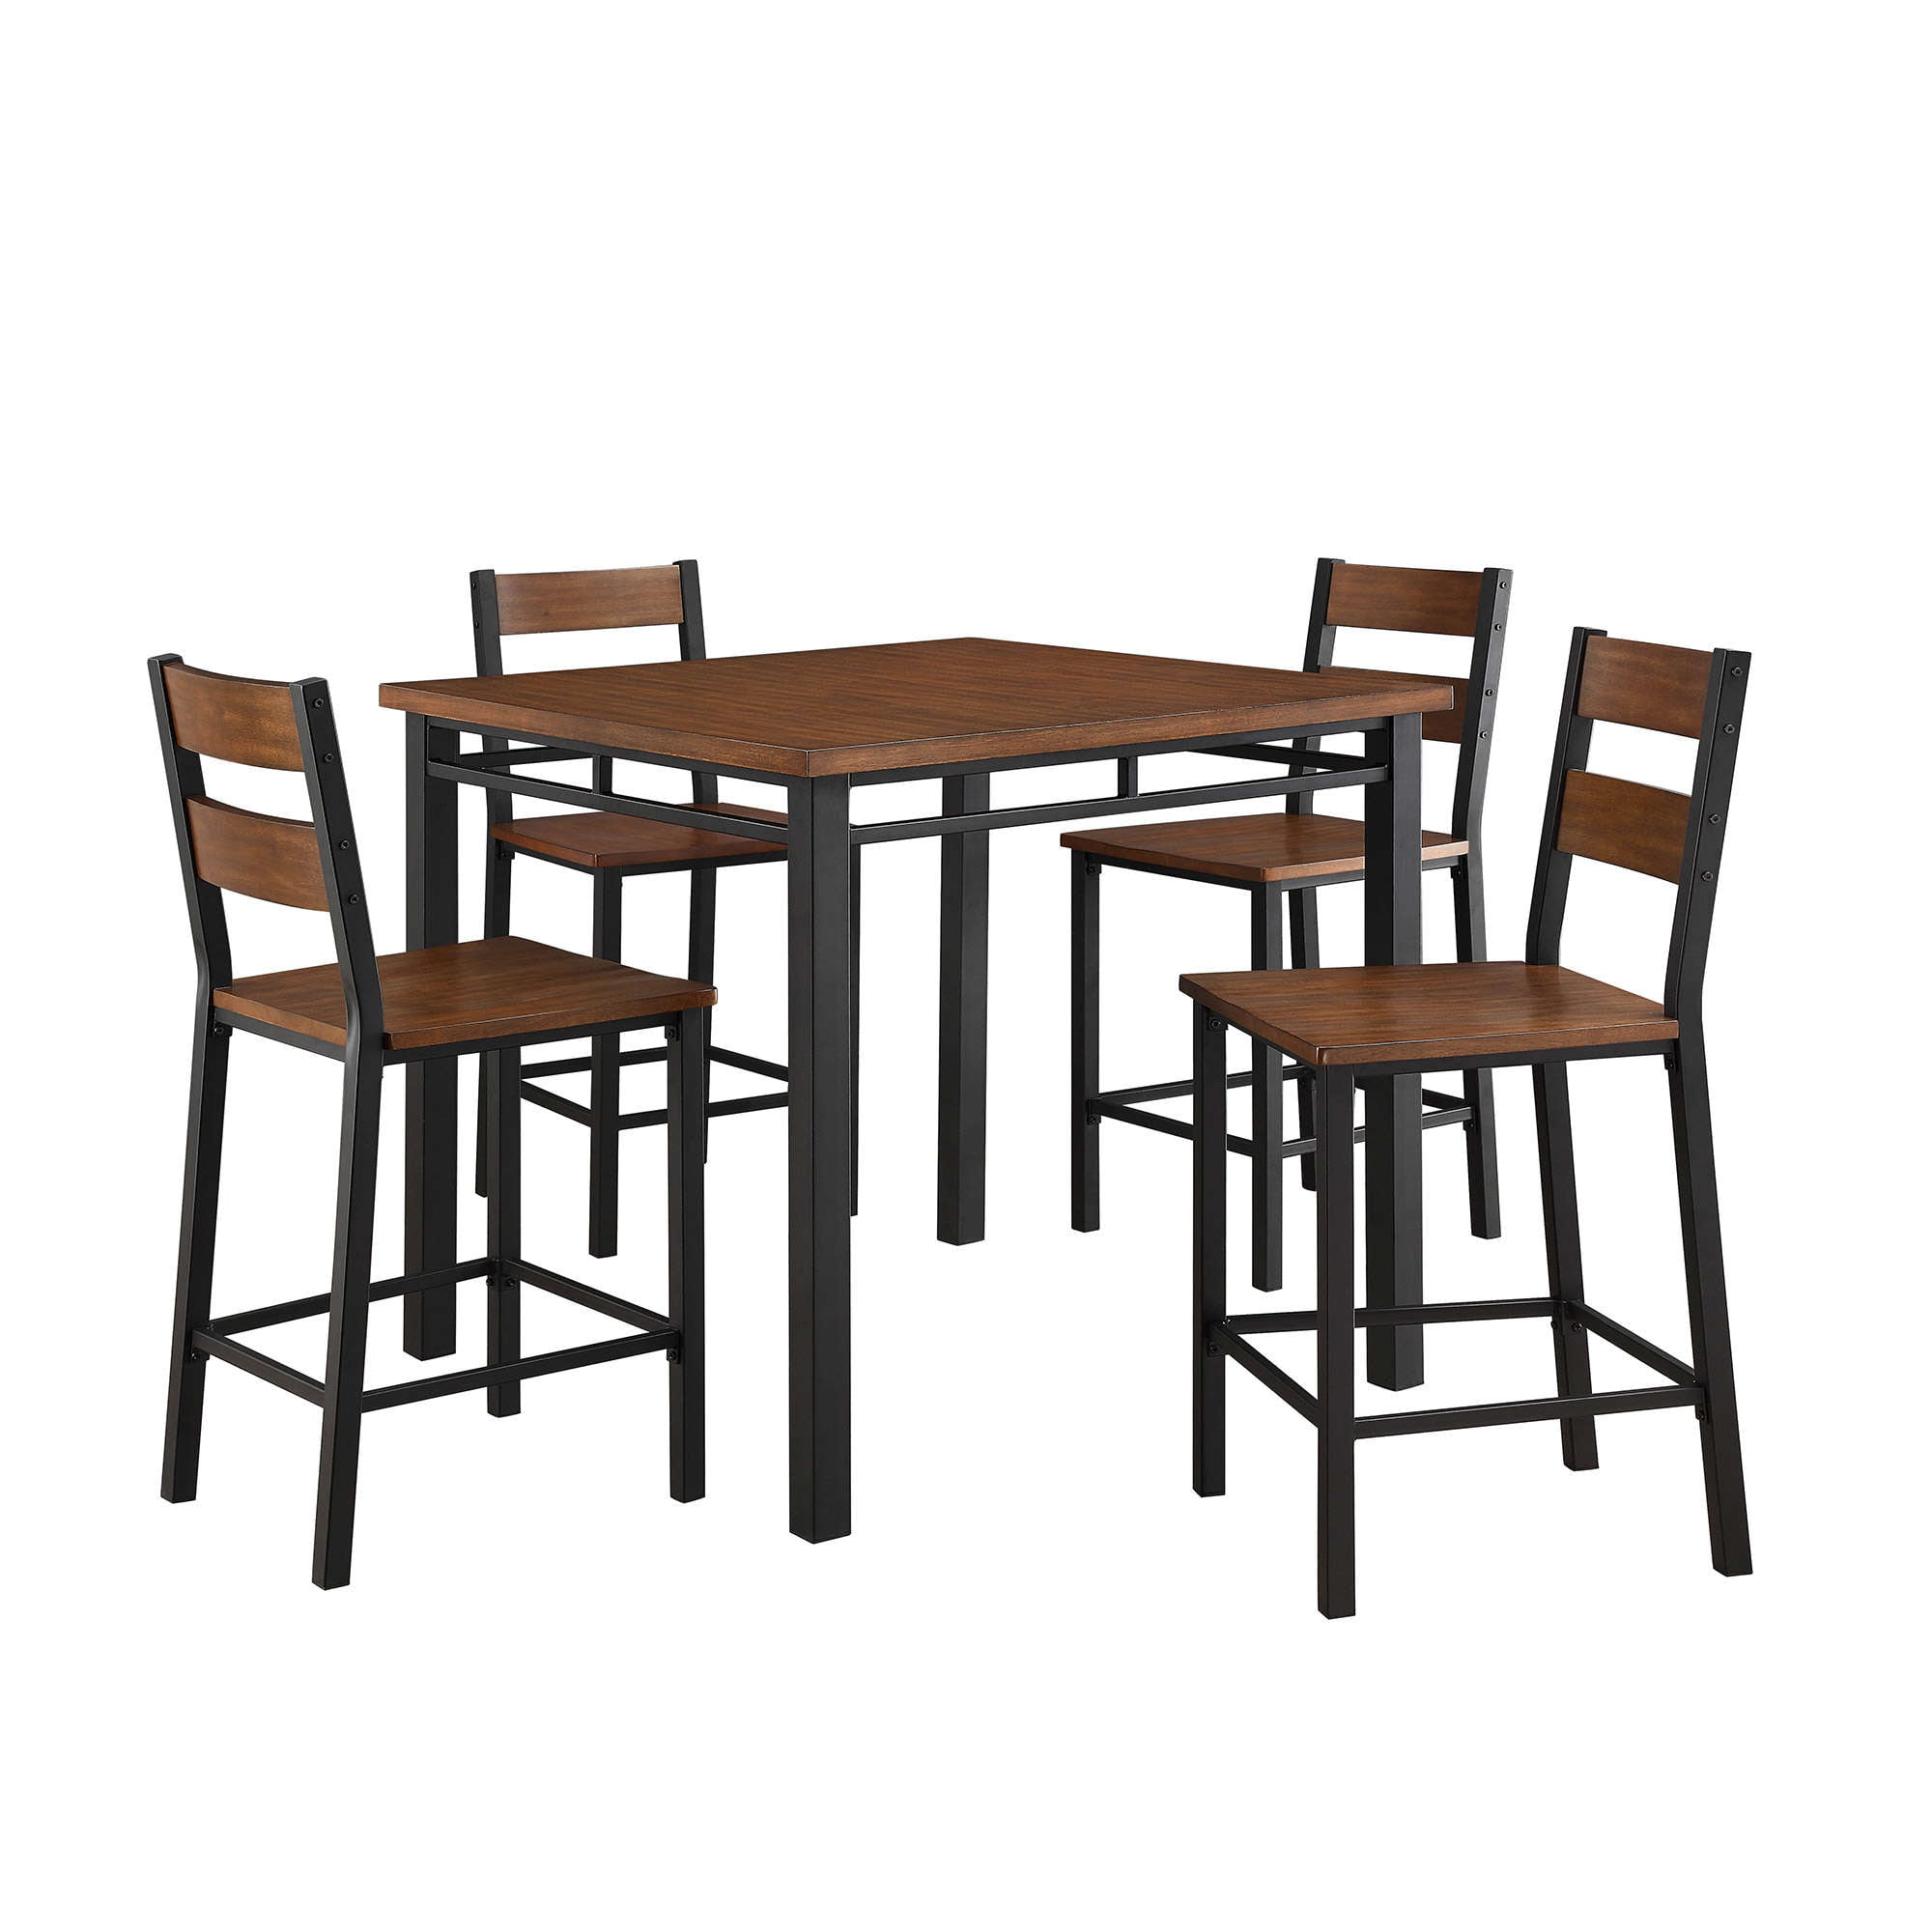 Better Homes & Gardens Mercer 5-Piece Counter Height Dining Room Set, Includes Table and 4 Chairs, Vintage Oak Finish by .